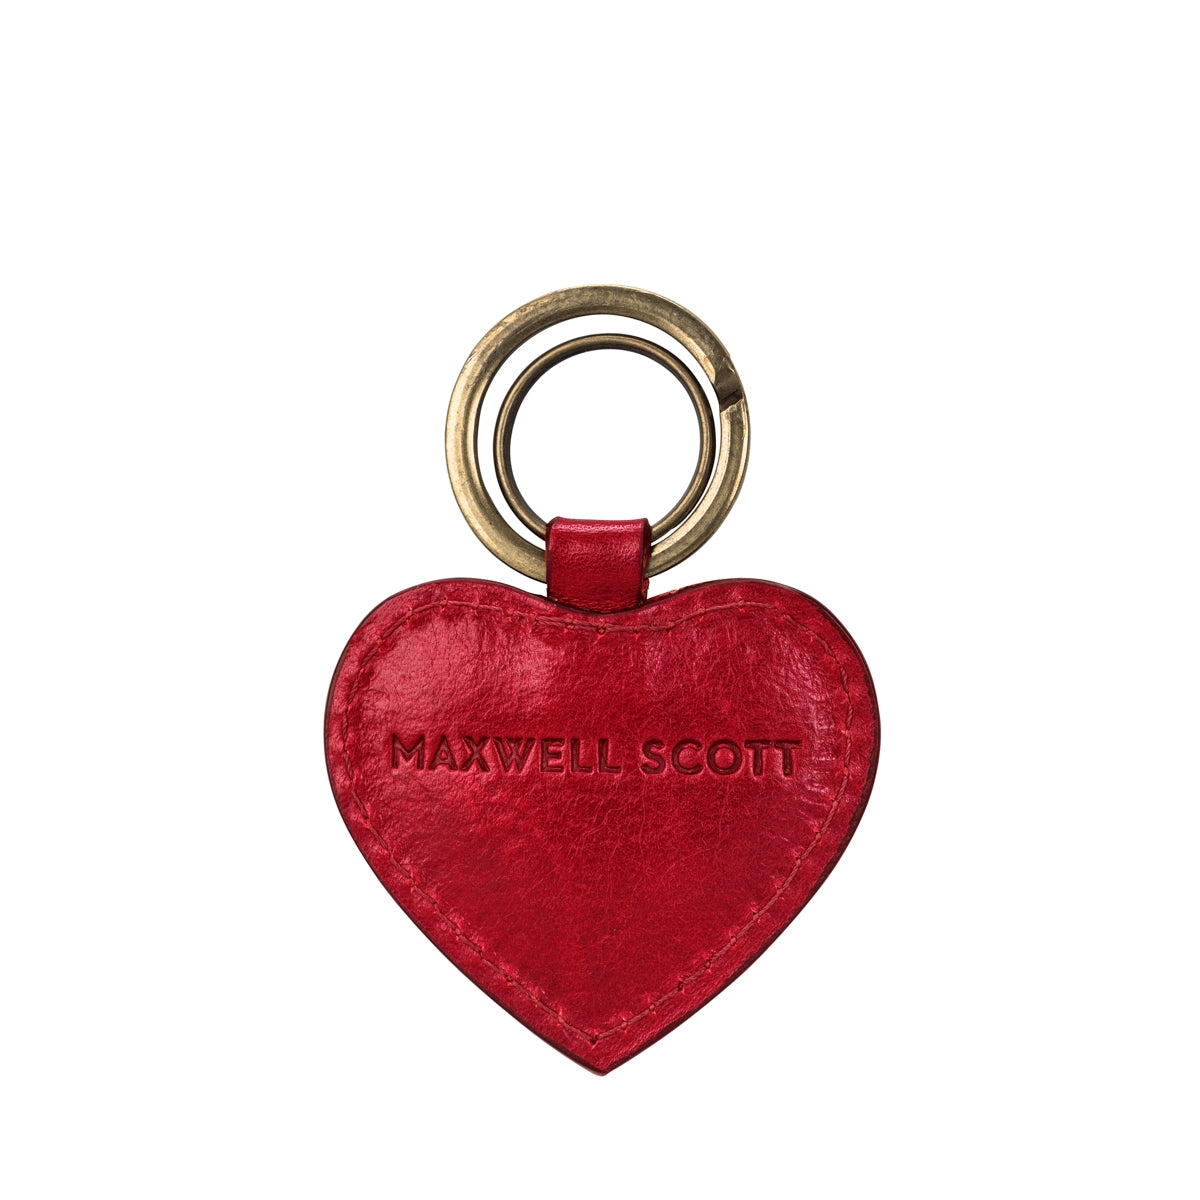 Image 4 of the 'Mimi' Veg-Tanned Leather Heart Key Ring